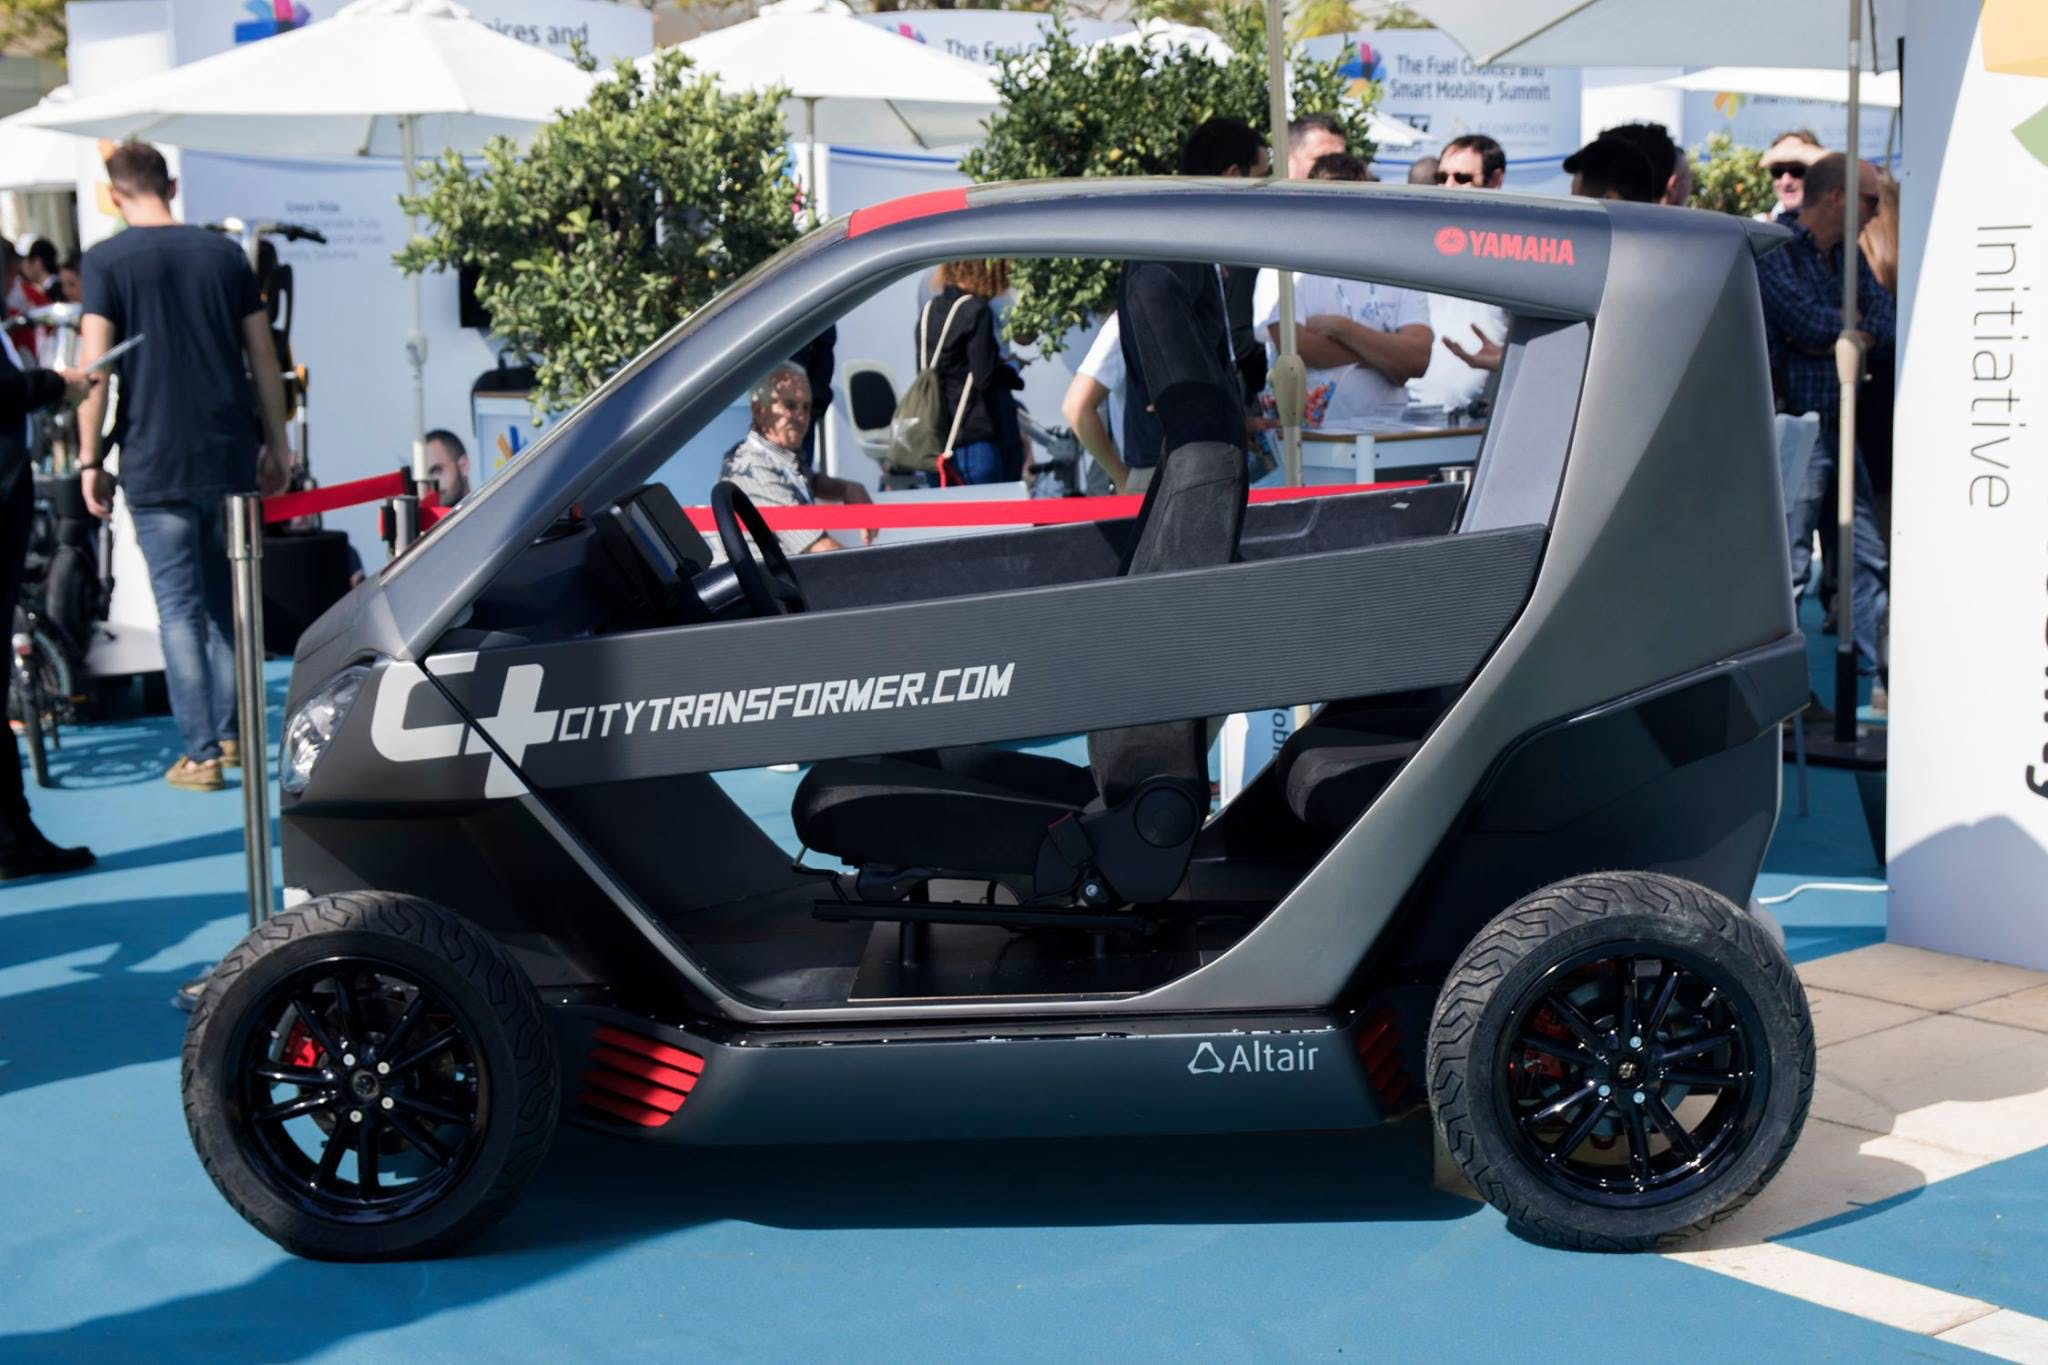 is city transformer's new folding car the answer to our parking